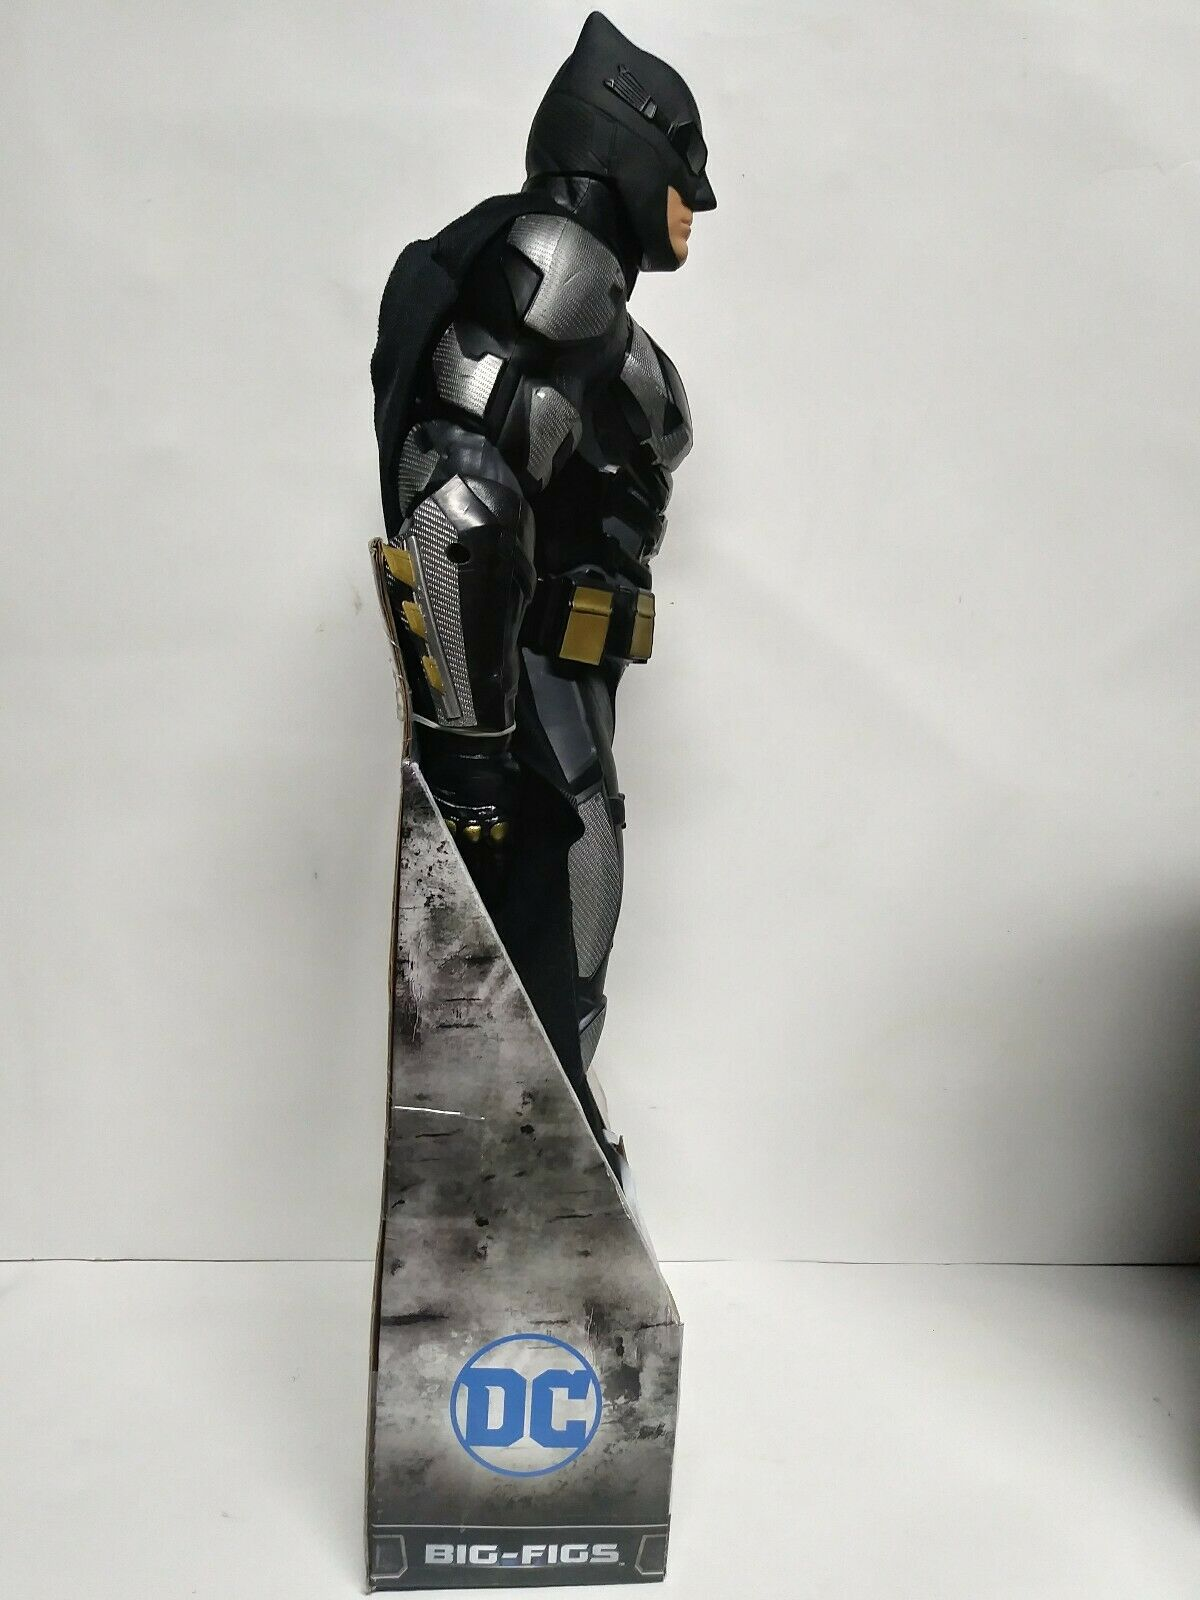 Jakks Jakks Jakks Pacific DC Justice League Batman TACTICAL suit 19 Inches Big-Figs b057f7